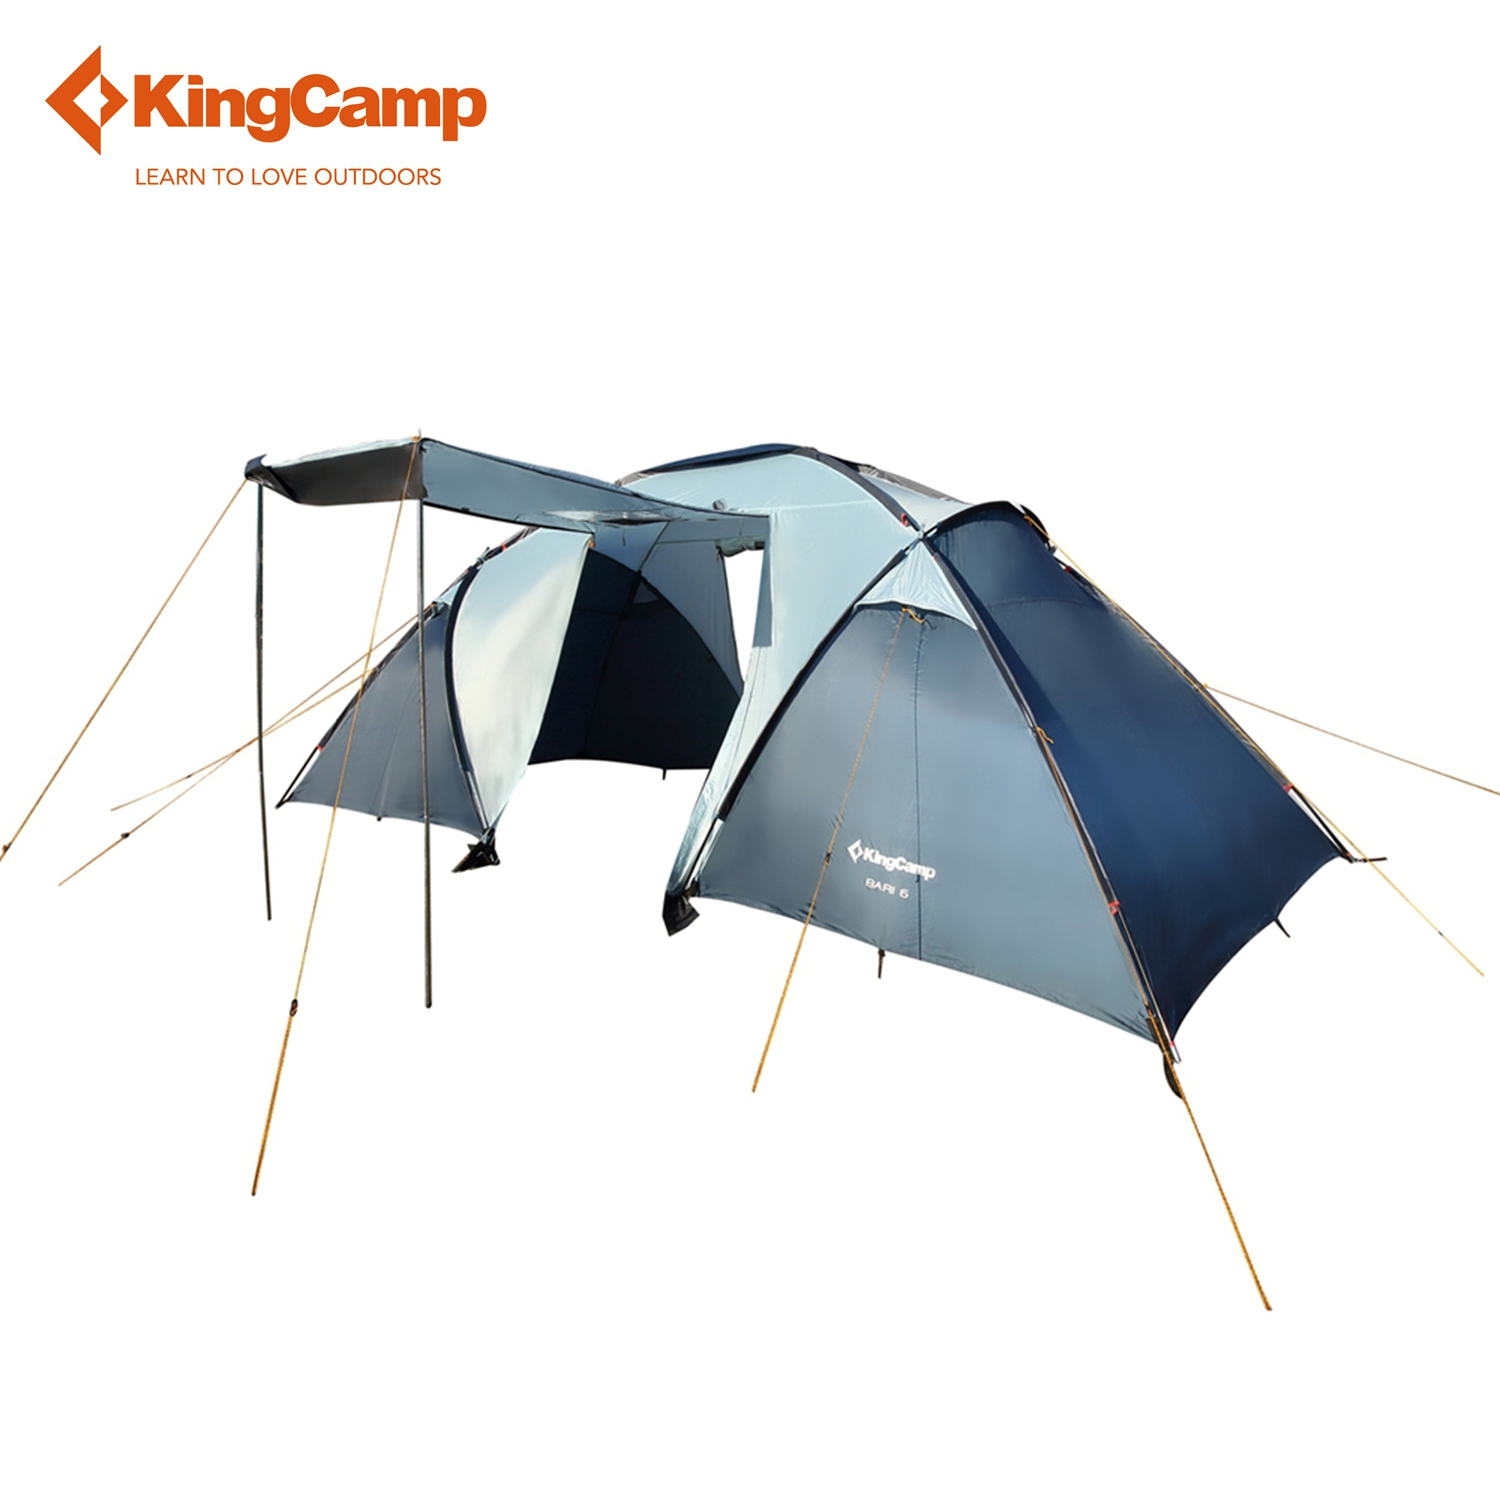 KingCamp 6 person 2 living rooms Camping Family Party Tent ...